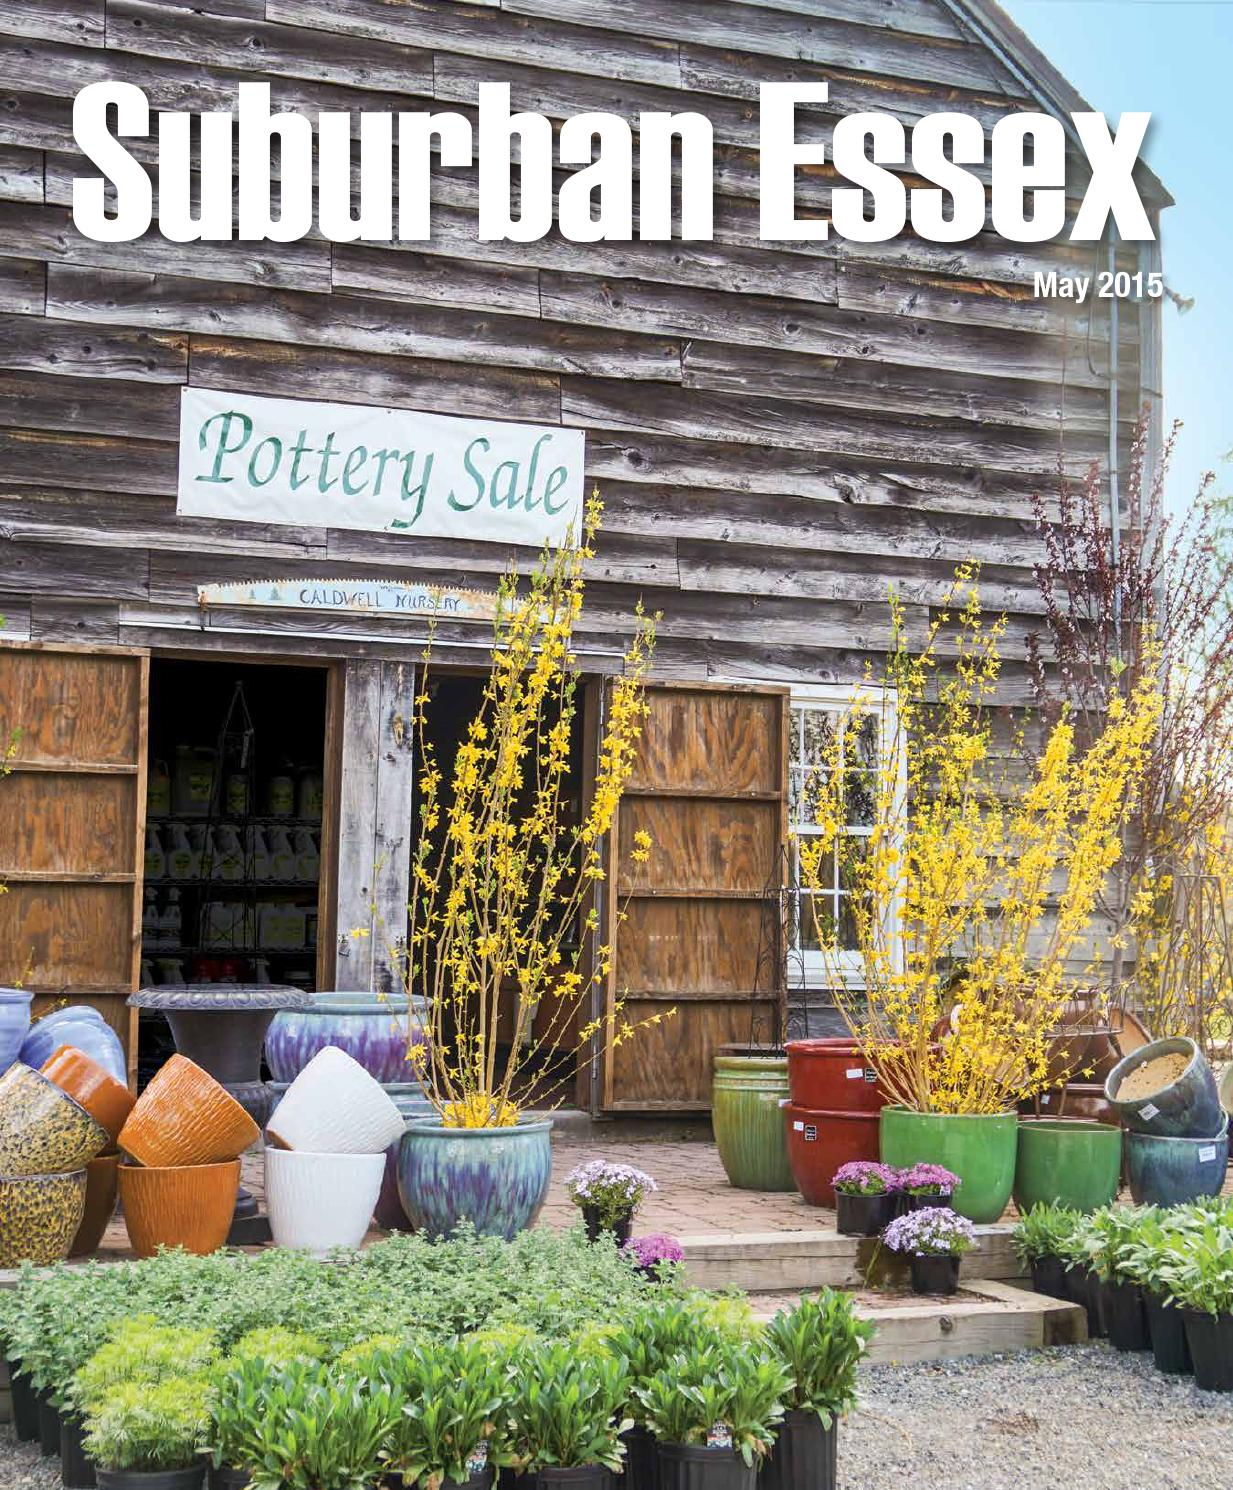 Suburban Essex By Vicinity Media Group Issuu